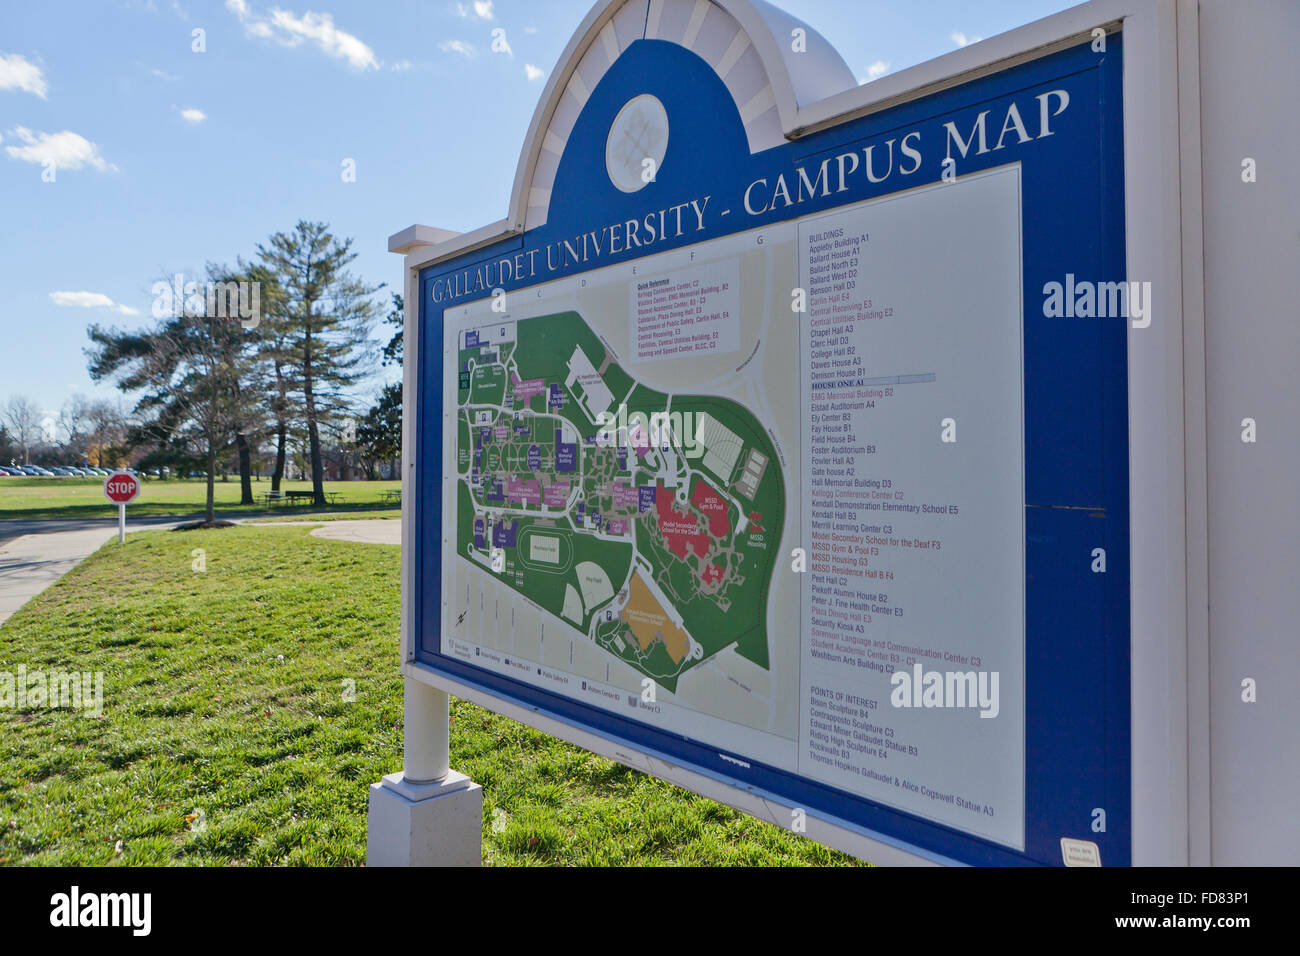 Whitworth University Campus Map.Campus Map Stock Photos Campus Map Stock Images Alamy